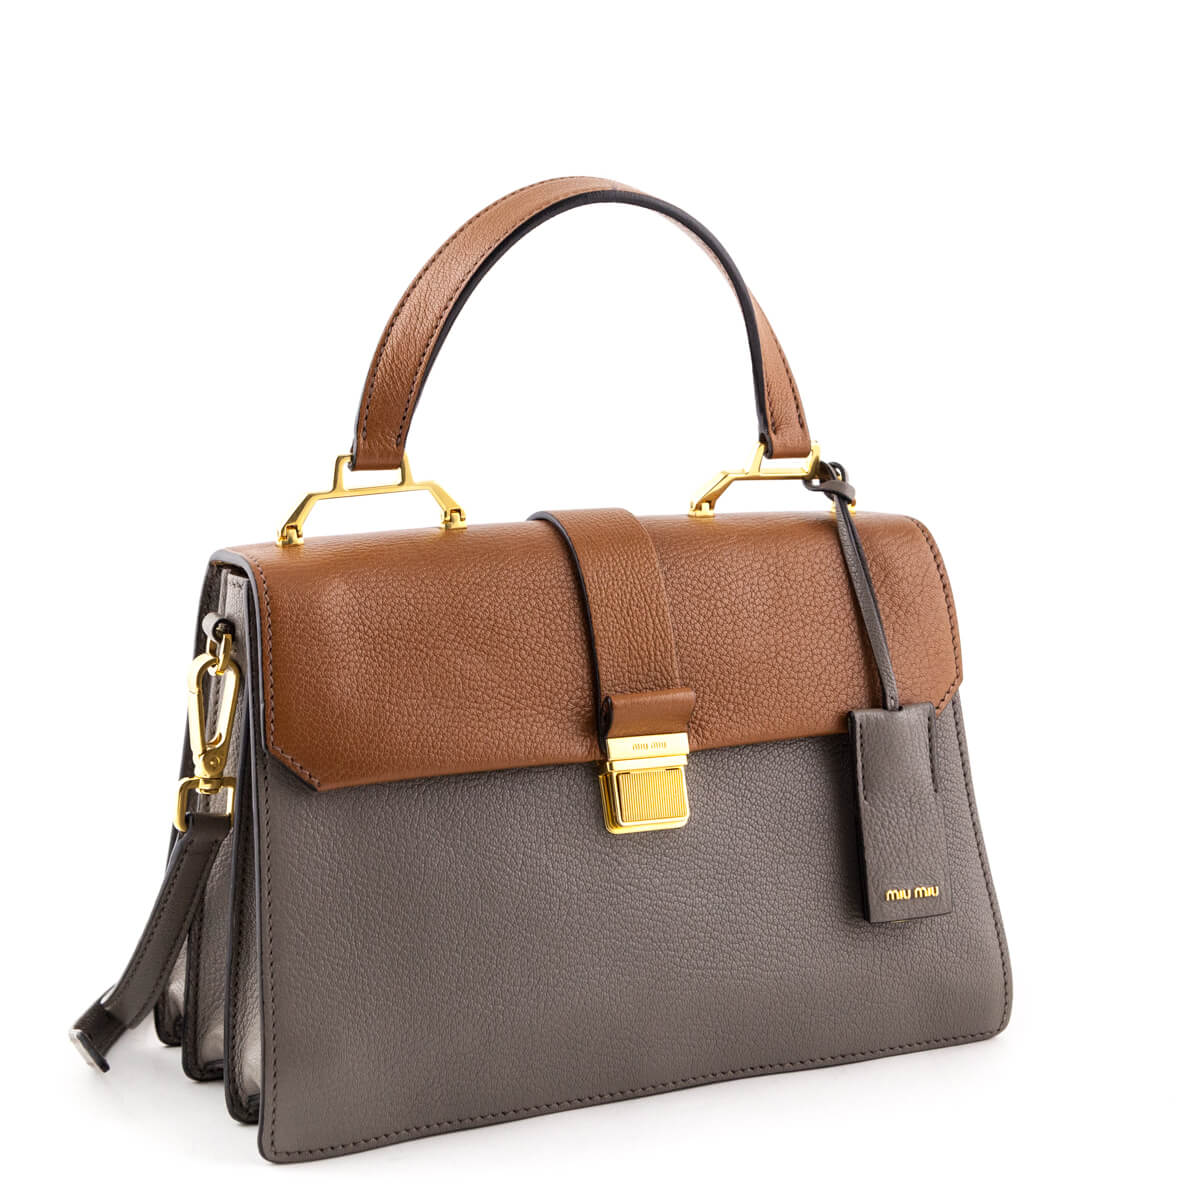 a8bcb5a6ea12 Miu brown and gray madras top handle love that bag preowned authentic  designer jpg 1200x1200 Gray